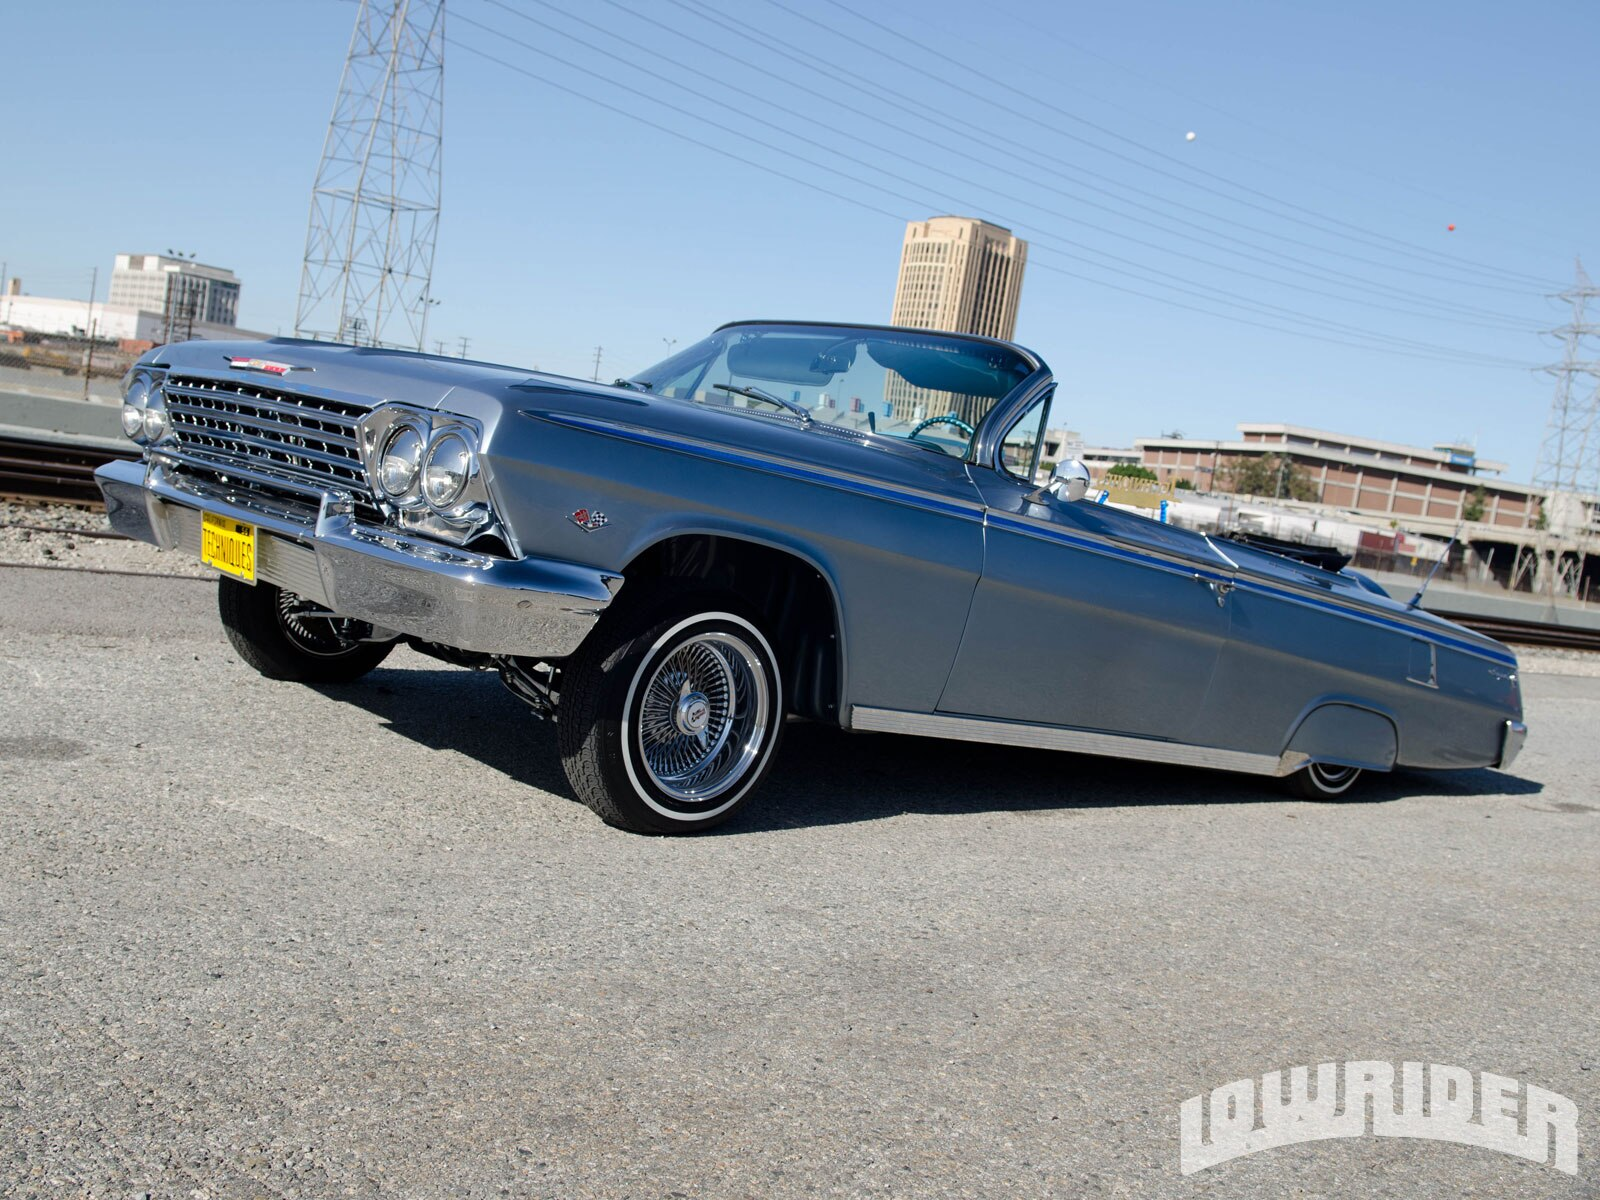 1209-lrmp-08-o-1962-chevrolet-impala-convertible-driver-side-front-view2